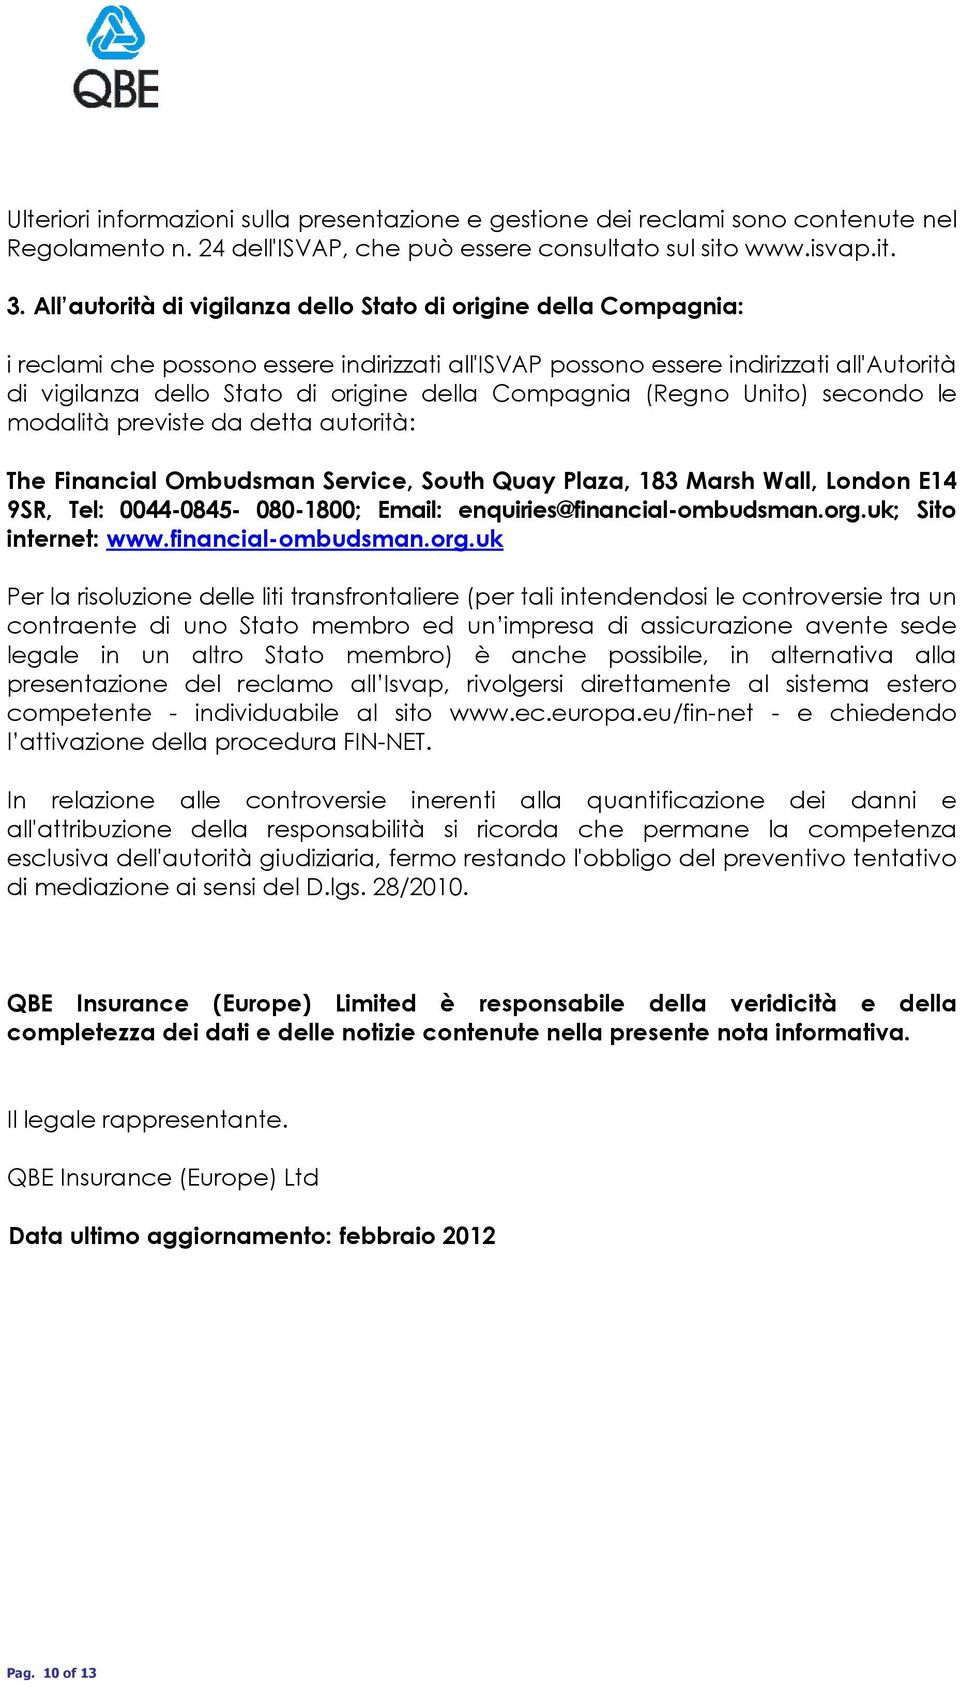 Compagnia (Regno Unito) secondo le modalità previste da detta autorità: The Financial Ombudsman Service, South Quay Plaza, 183 Marsh Wall, London E14 9SR, Tel: 0044-0845- 080-1800; Email: